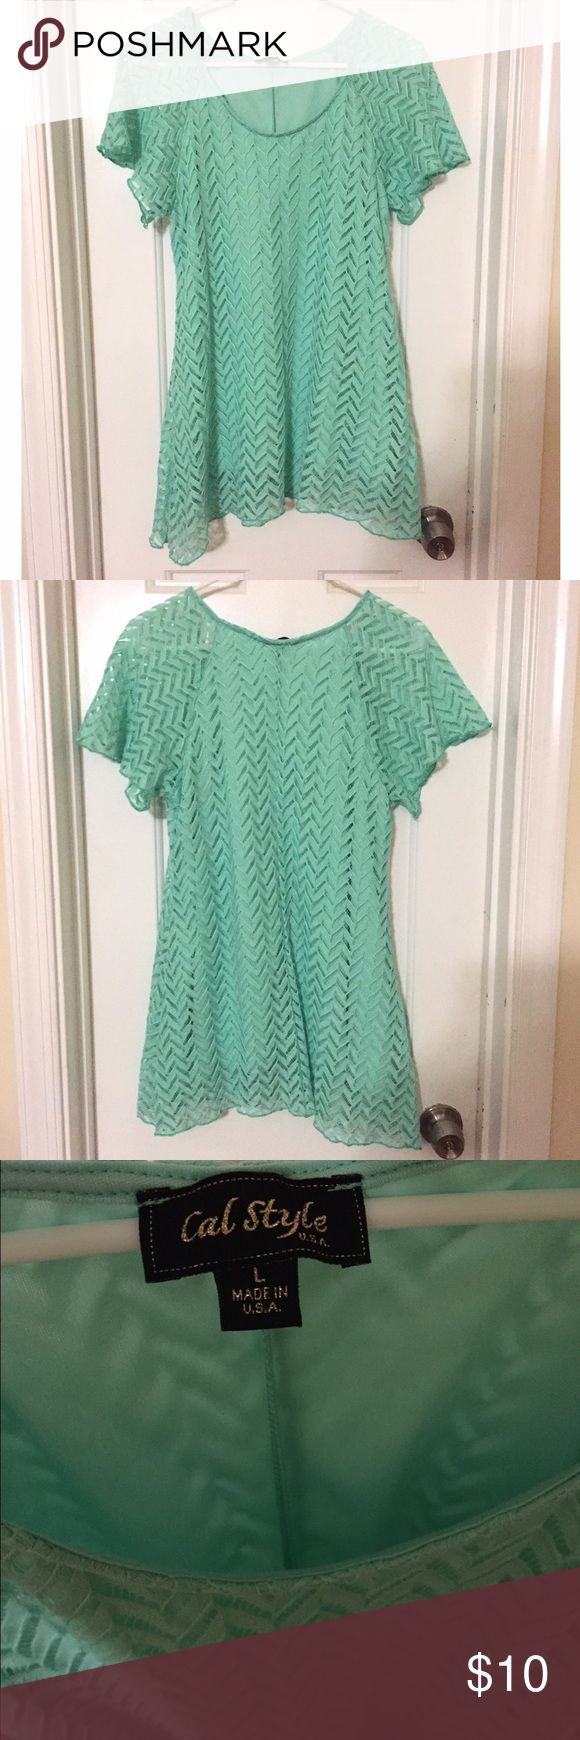 Lace Tunic Top Mint Green Blouse SZ Large This Lace Tunic Mint Green Lace Tunic Top Mint Green Top is in like new condition. Cal Style - USA. Size Large. Very pretty Lace 🎀 Would look really cute with leggings. Cal Style Tops Tunics